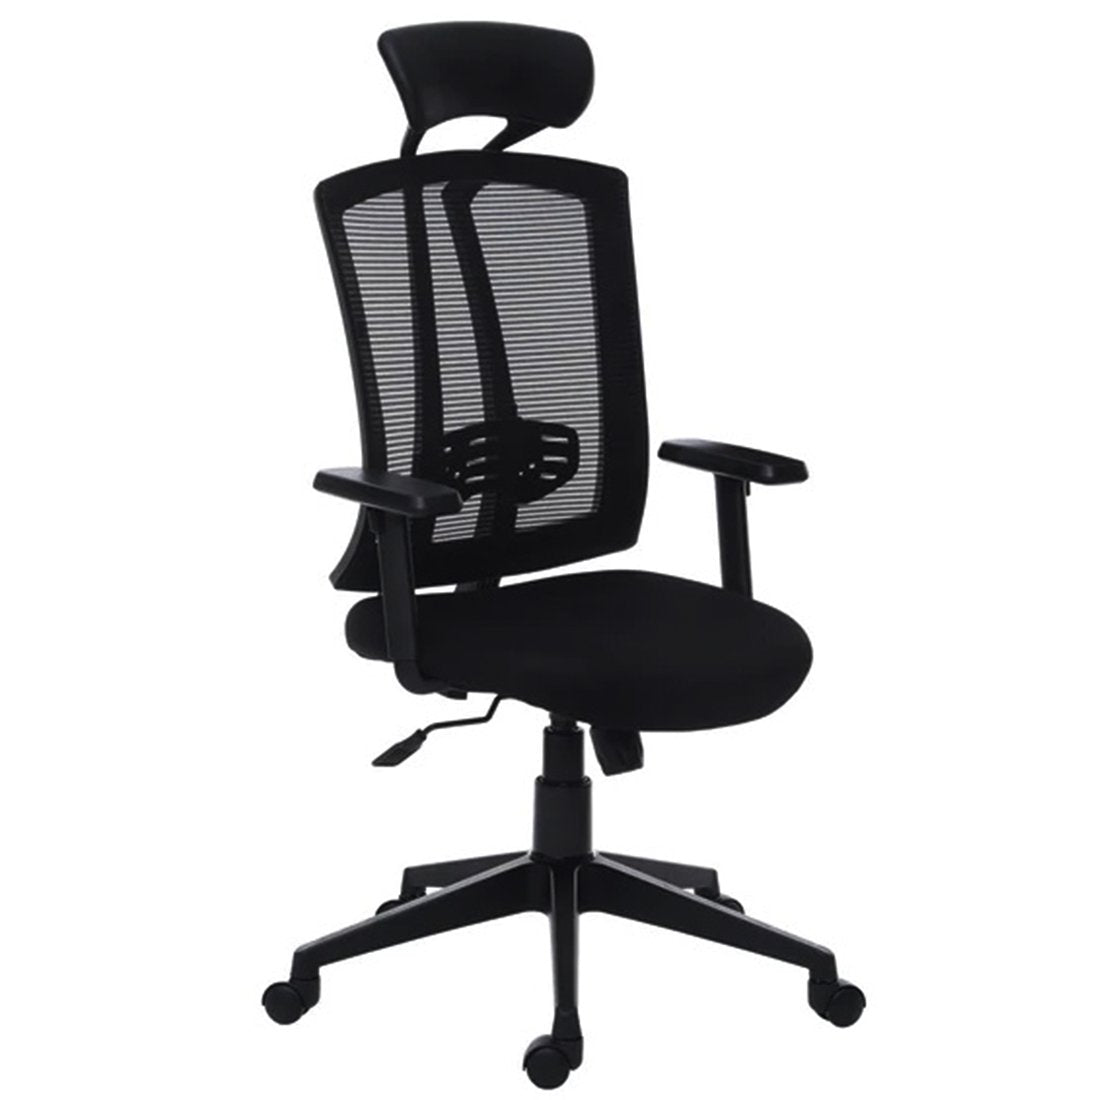 Hire-it Ergonomic Desk Chair Adjustable Revolving Chair - Black Color